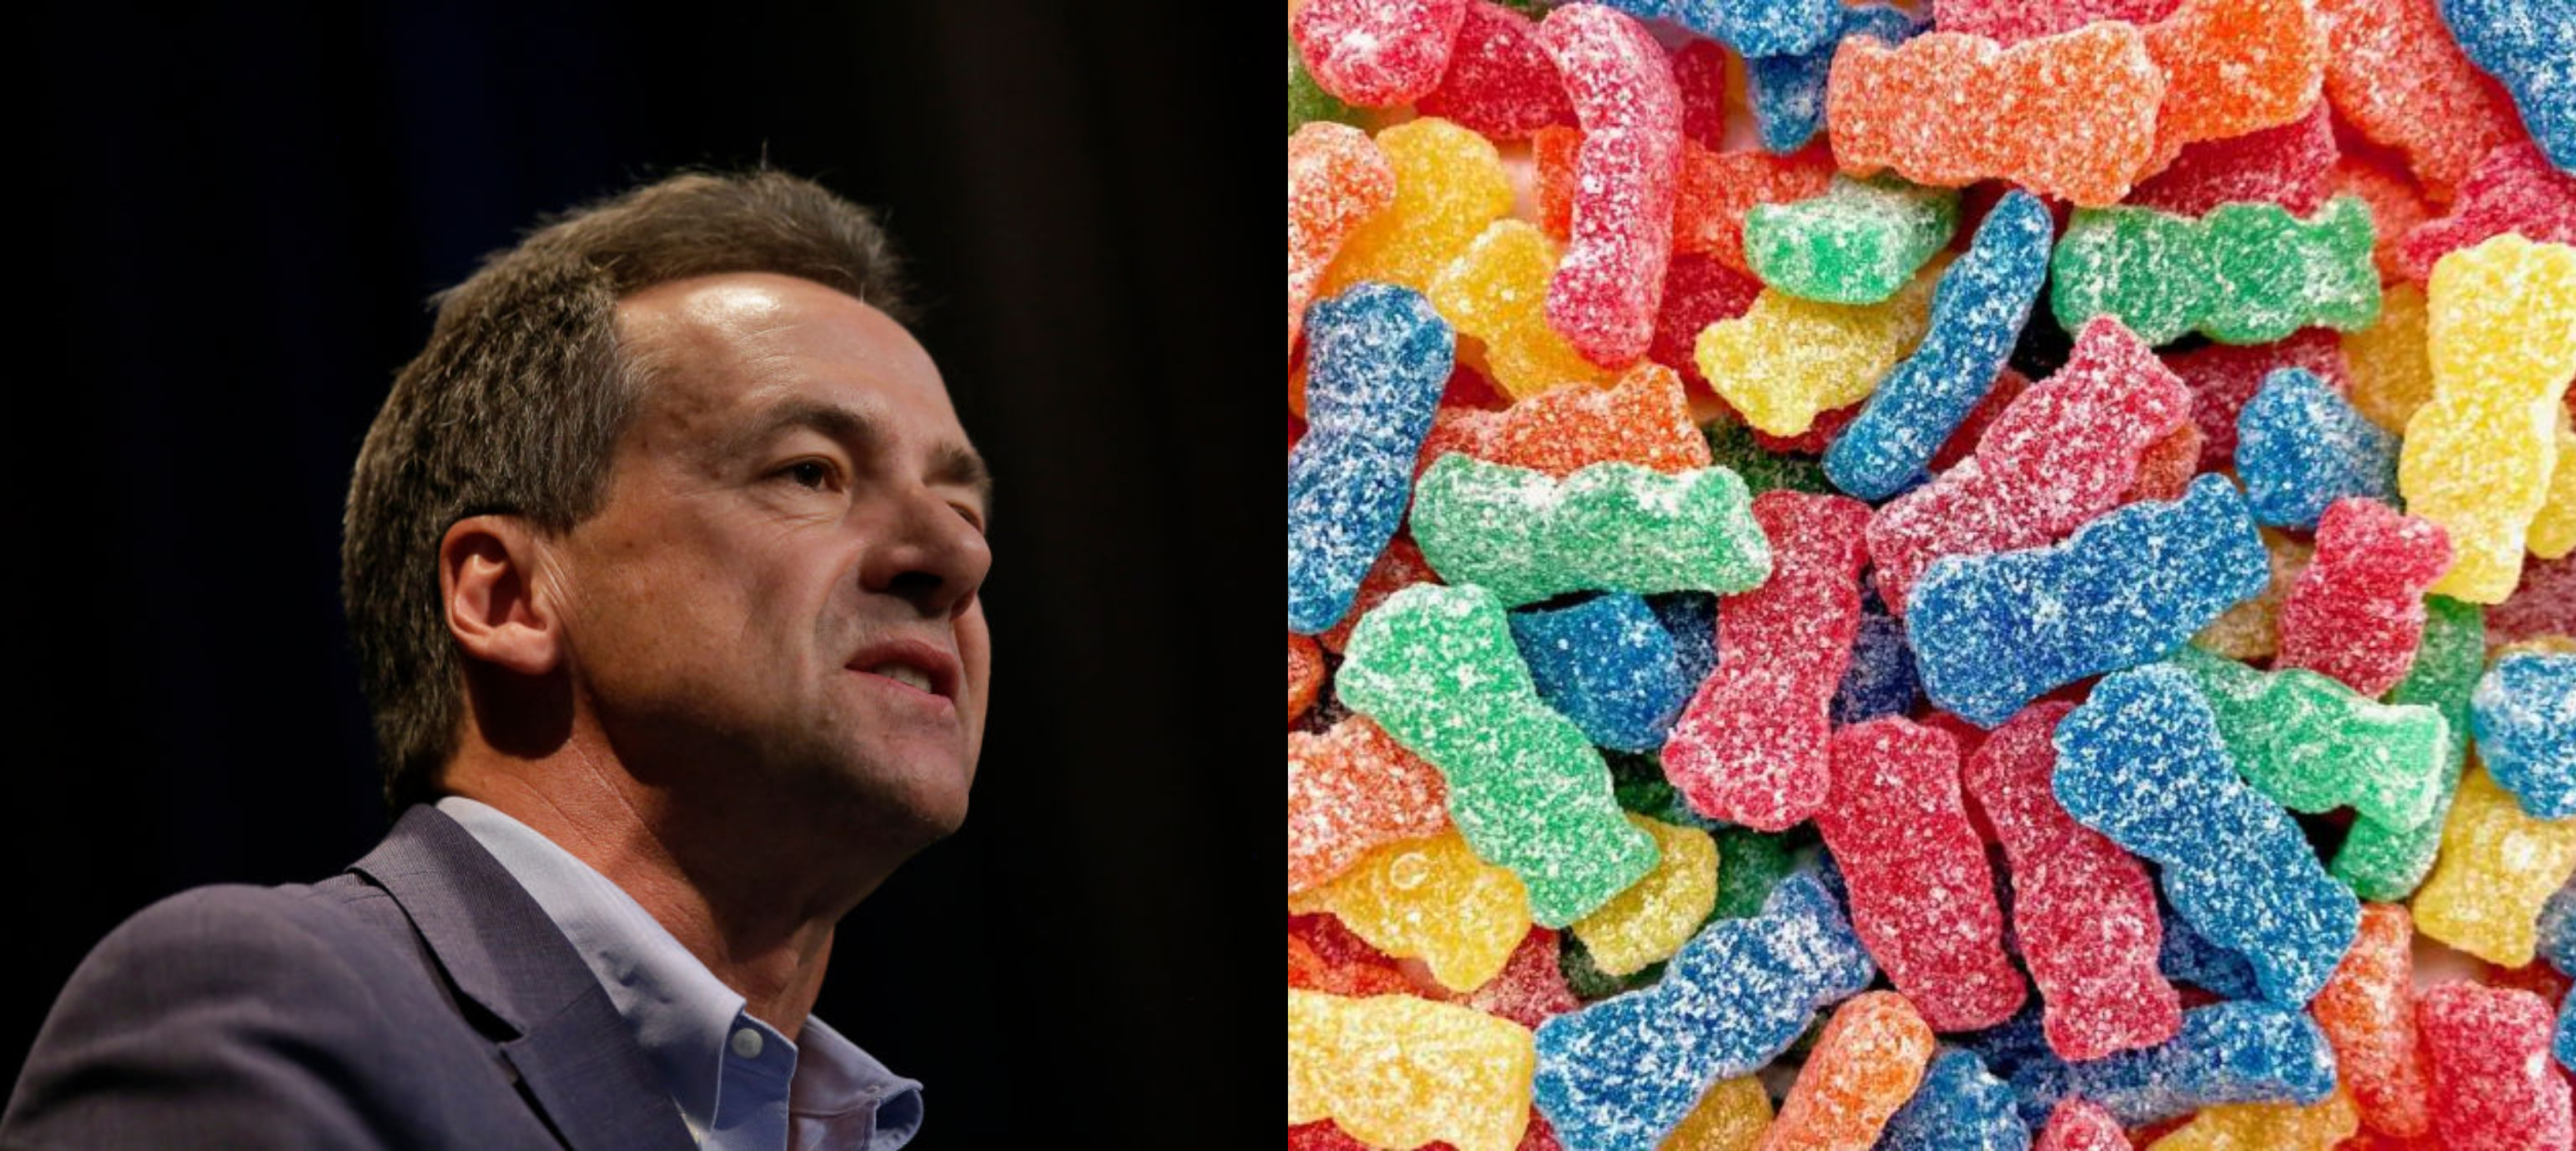 Steve Bullock – Sour Patch Kids